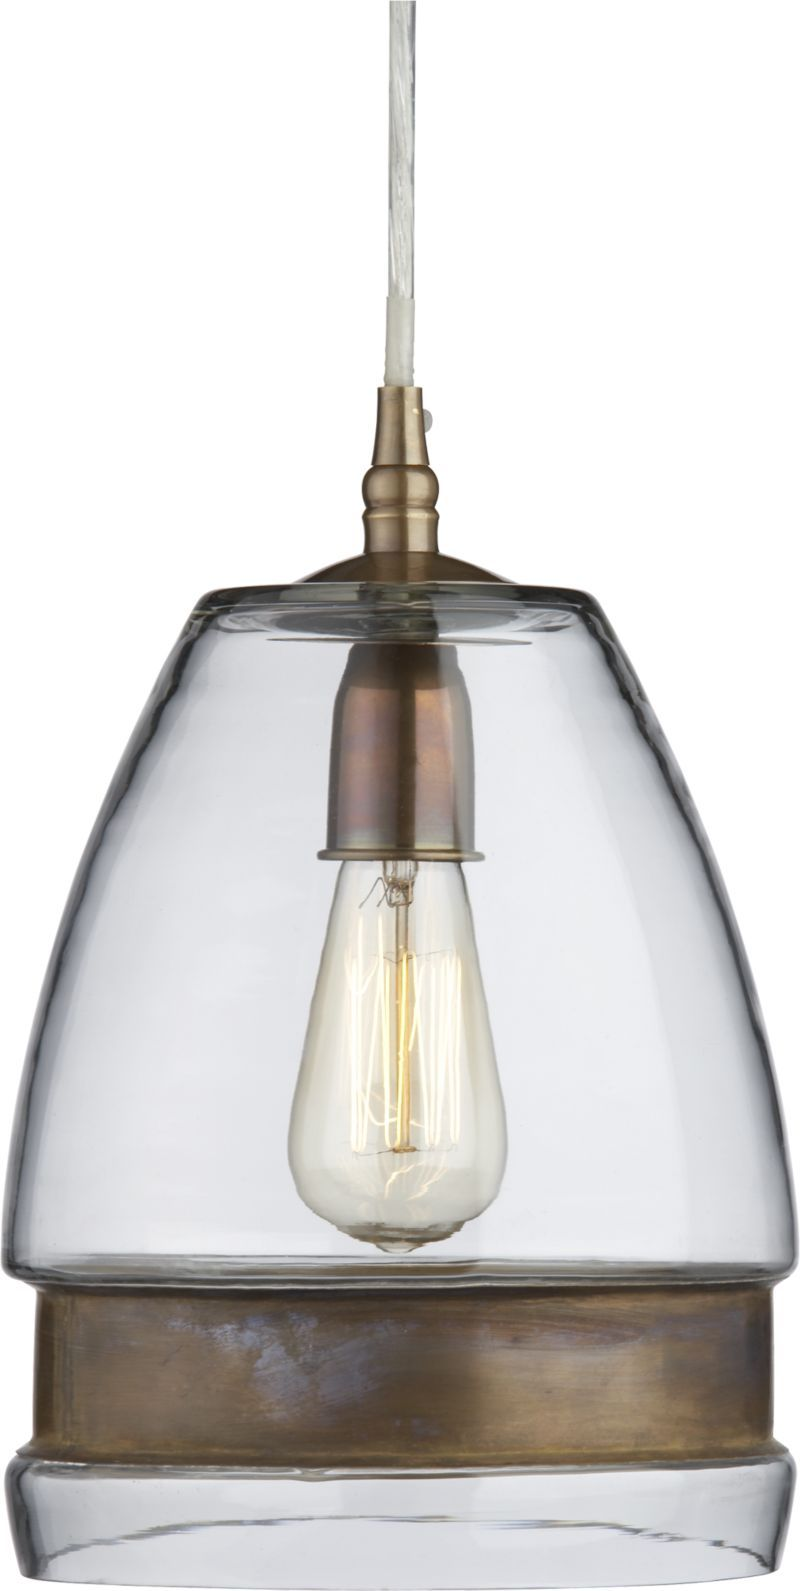 Morela Glass Pendant Lamp Crate And Barrel Glass